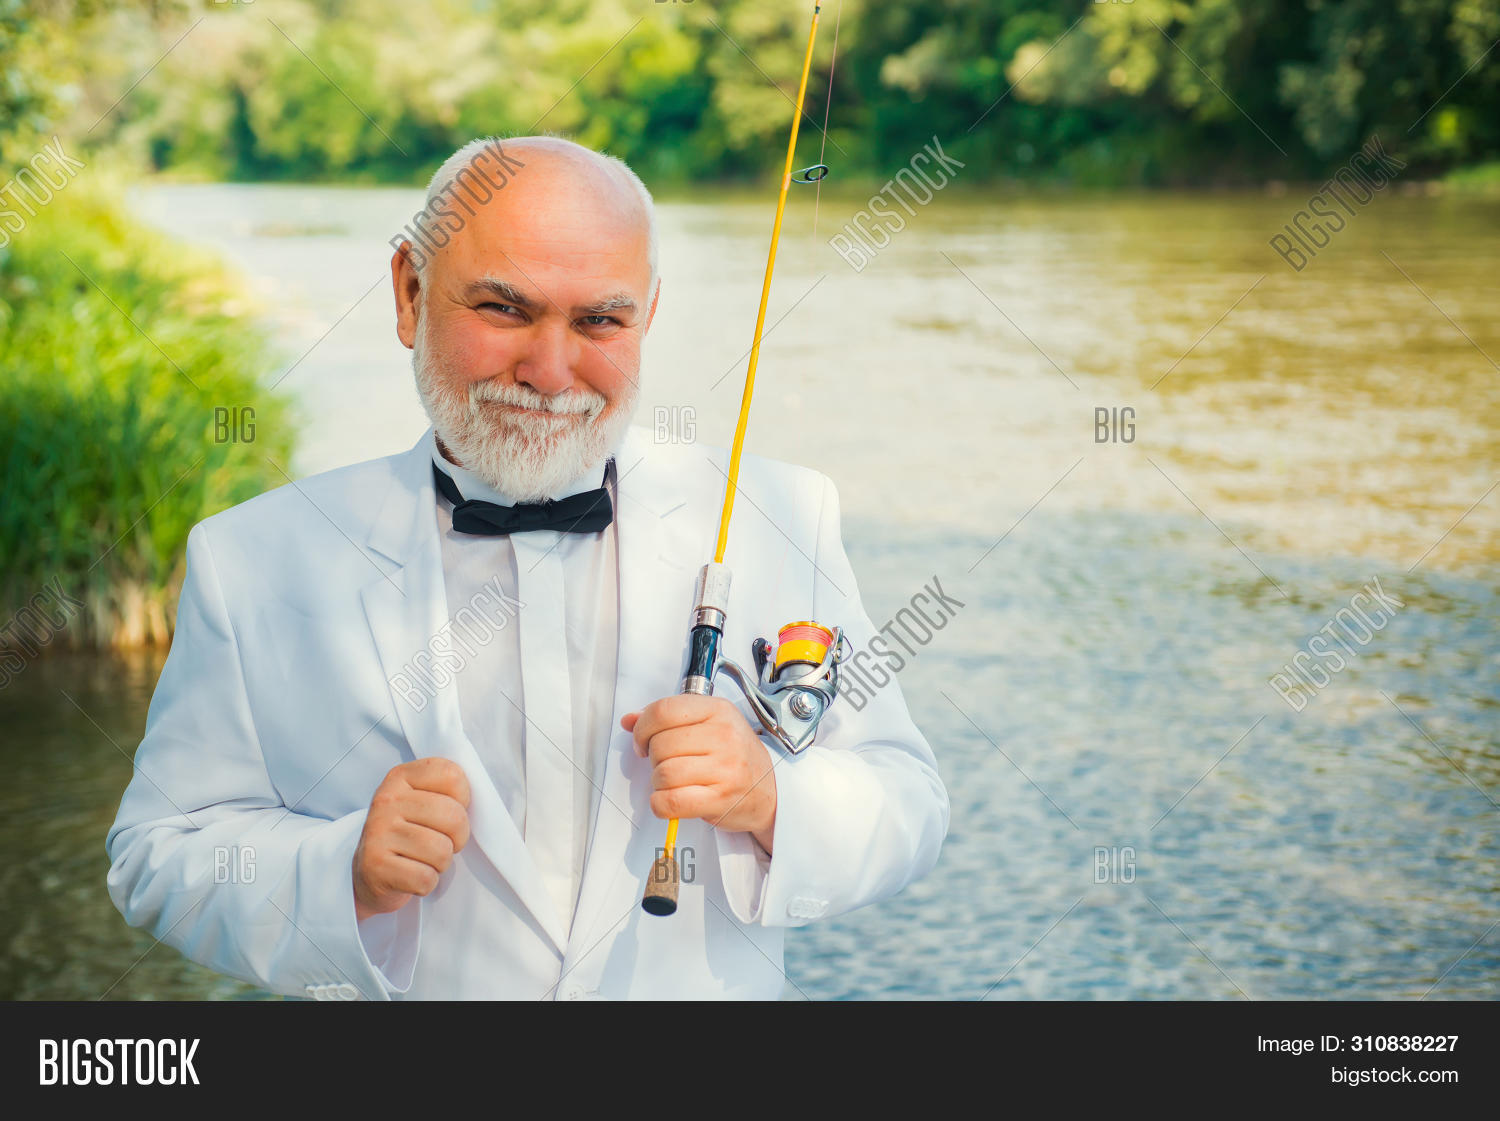 Fly Fishing For Trout. Brown Trout Being Caught In Fishing Net. Portrait Of Cheerful Man Fishing. Fl